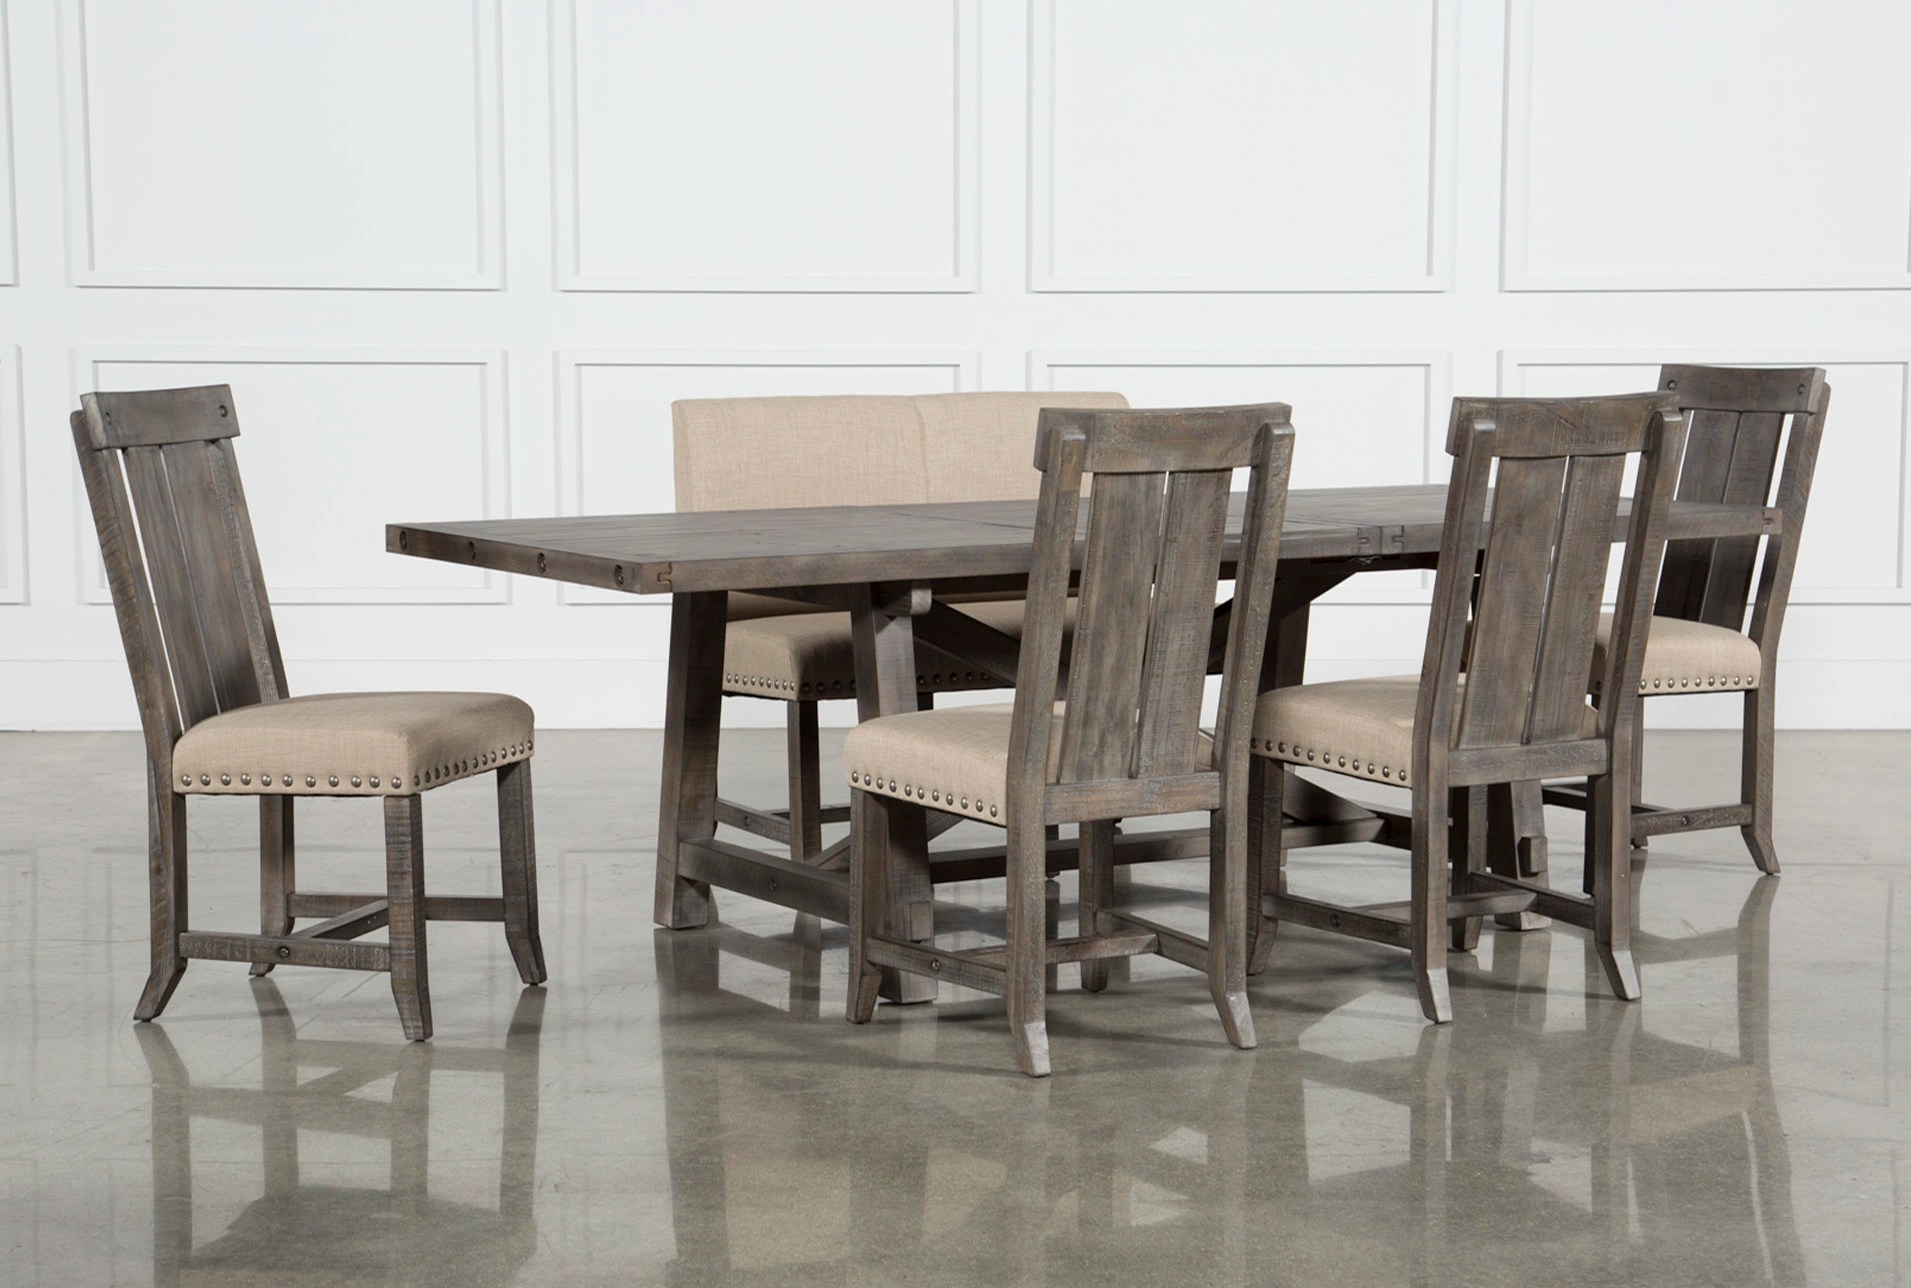 dining set with bench and chairs mat for under high chair room sets living spaces jaxon grey 6 piece rectangle extension w wood